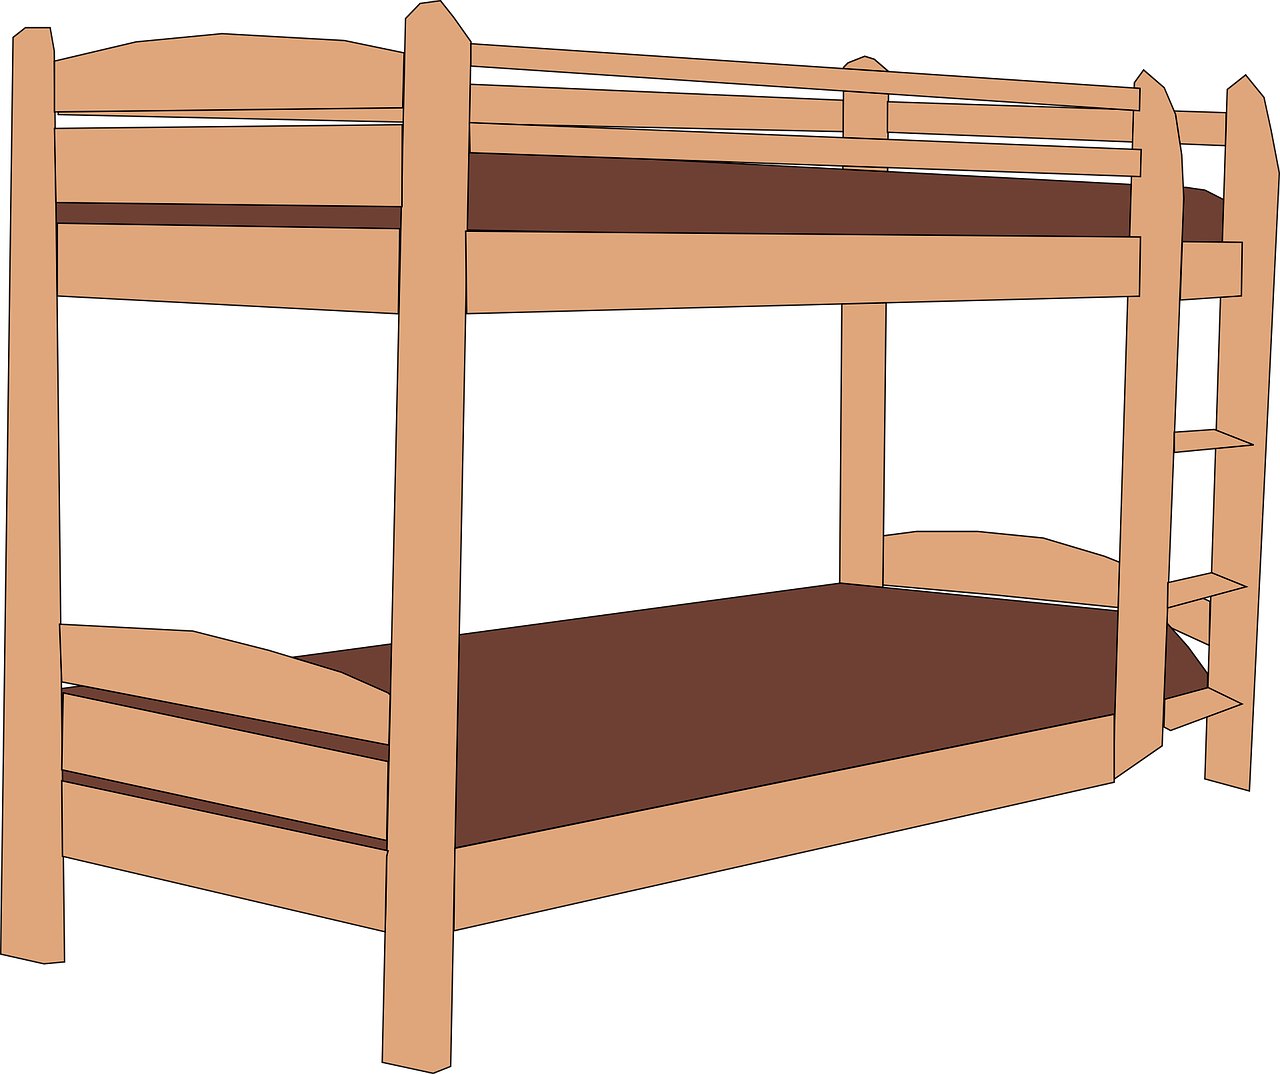 Vacation bunk stack wooden. Furniture clipart bed